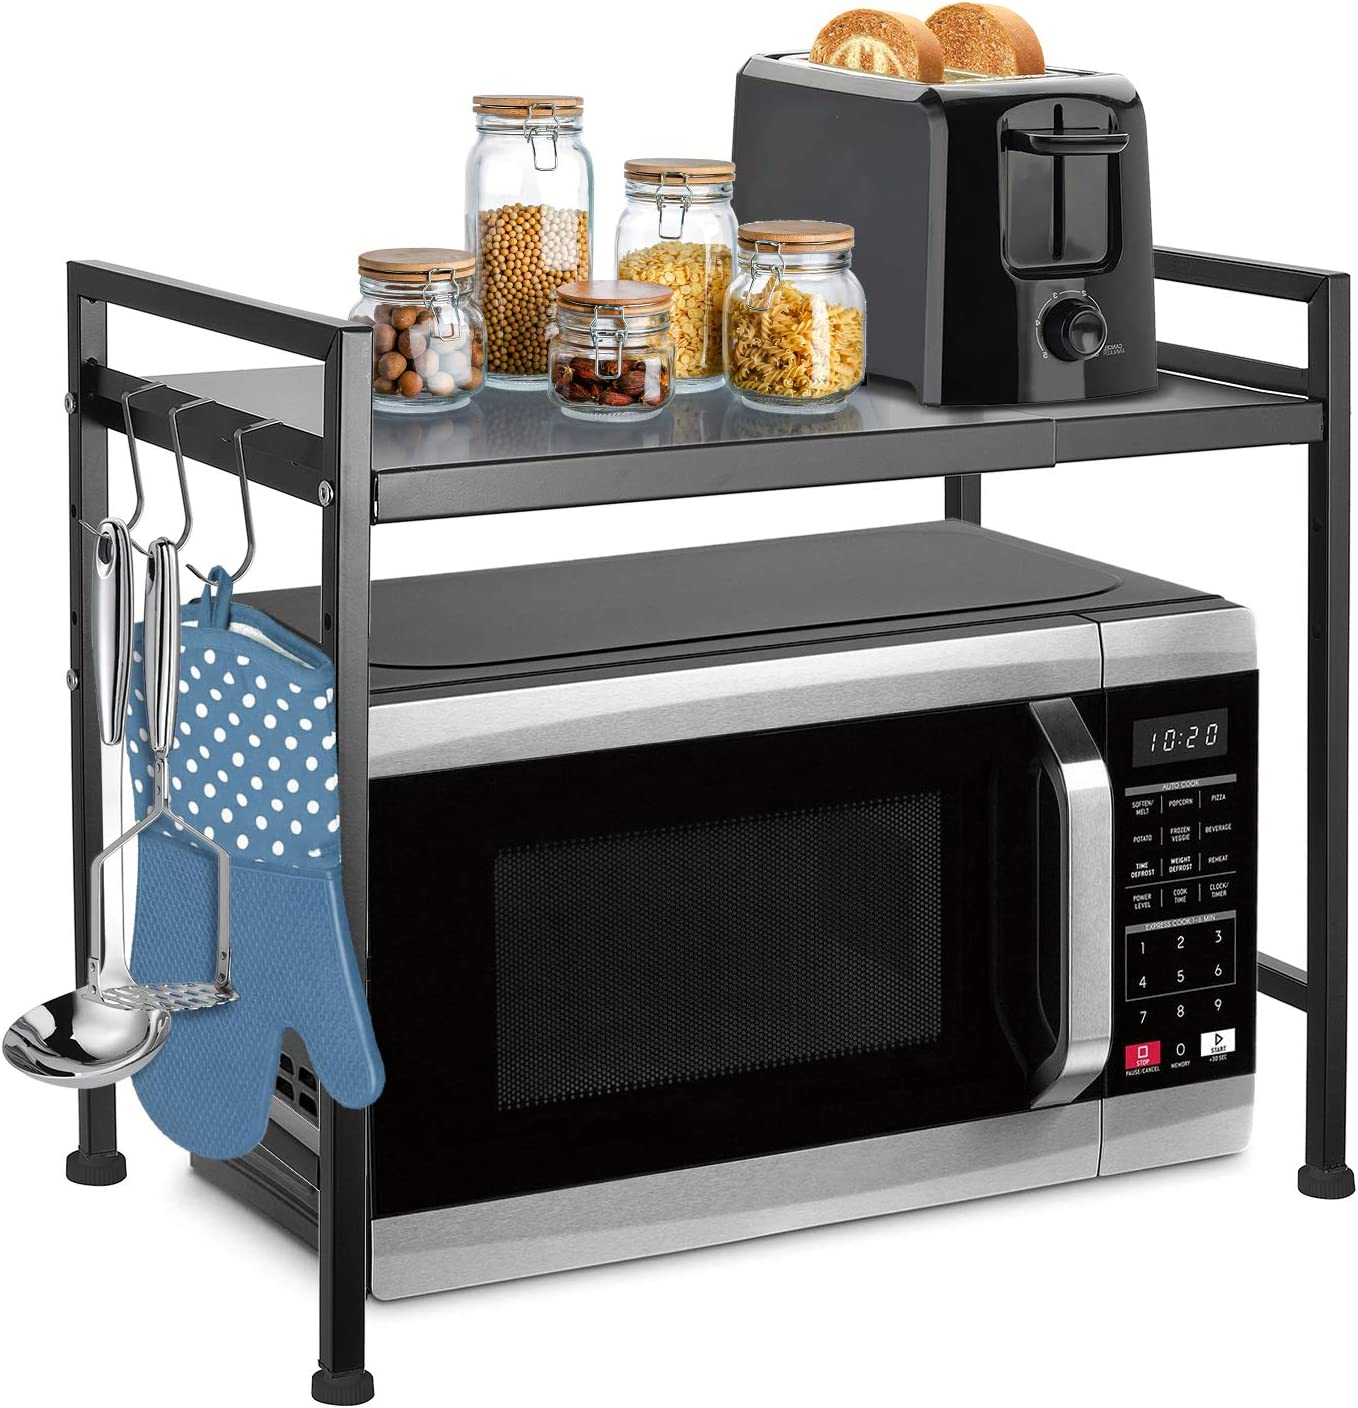 Microwave Oven Rack Stand with Adjustable Storage Shelving Unit 66lbs Capacity - Expandable Length & Height - with 3 Hooks for Kitchen Countertop Organizer HG526